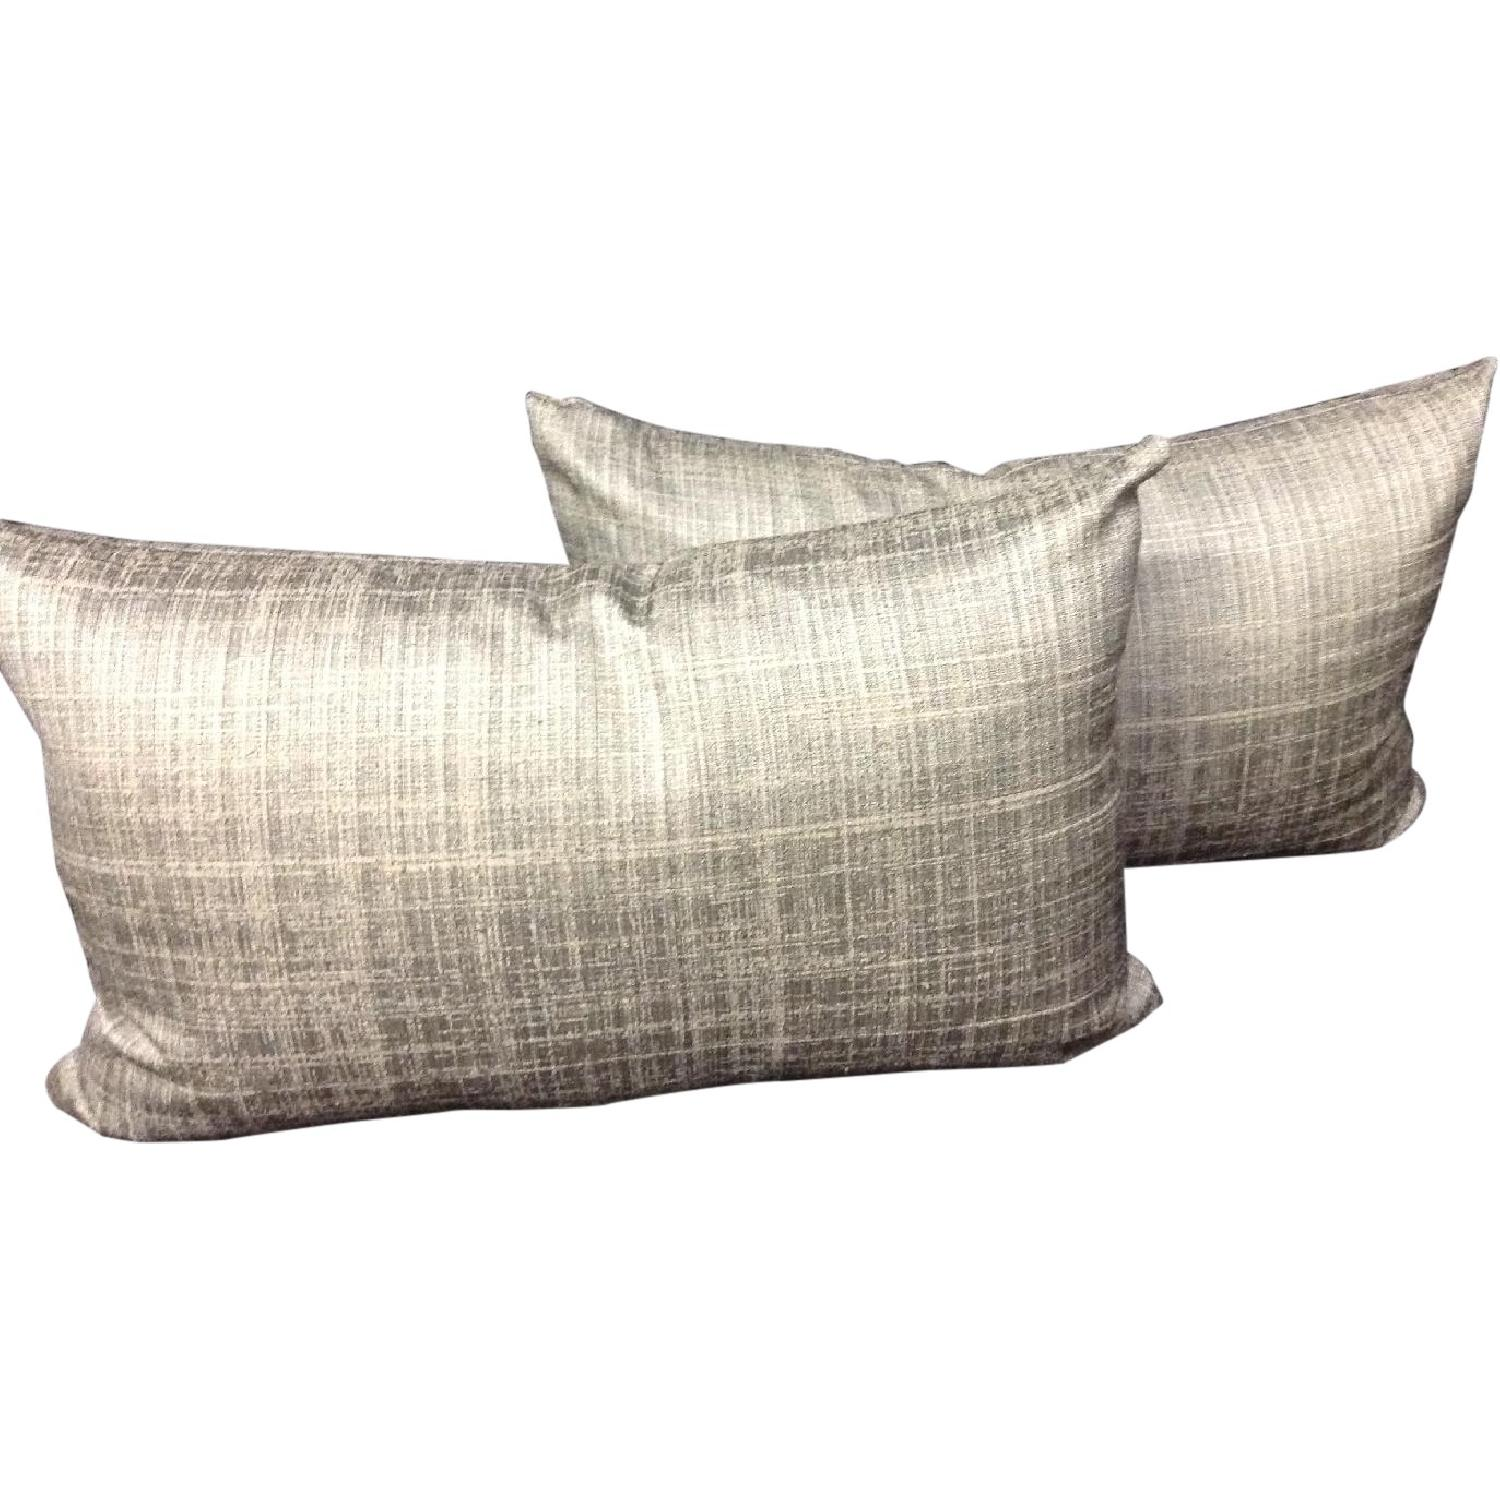 ballard designs fabric decorative pillows pair aptdeco ballard designs fabric decorative pillows pair